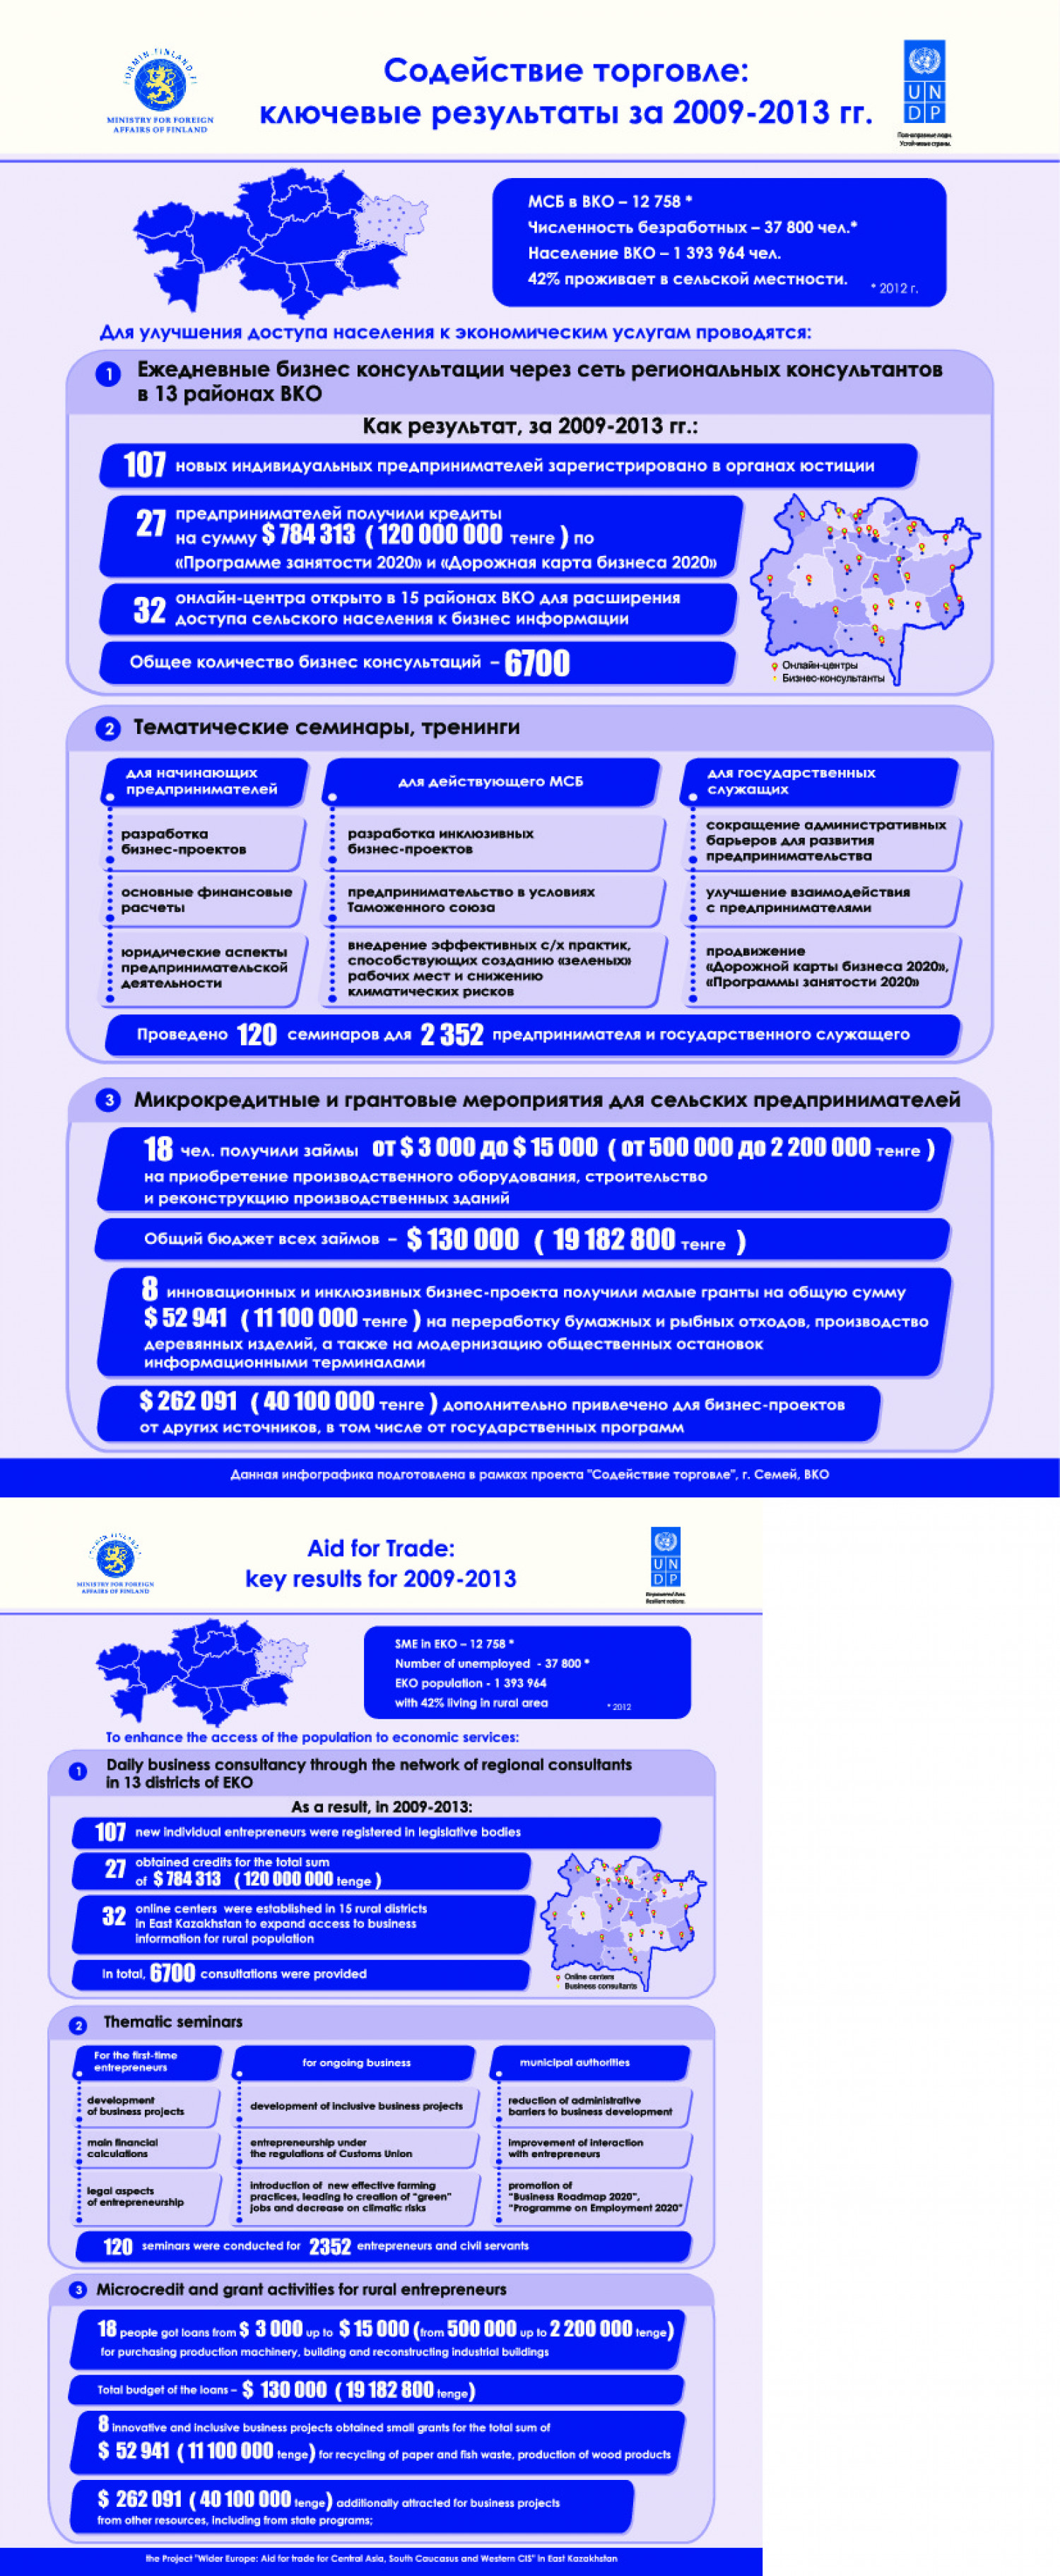 Aid fro Trade: Key Results for 2009 - 2013 Infographic